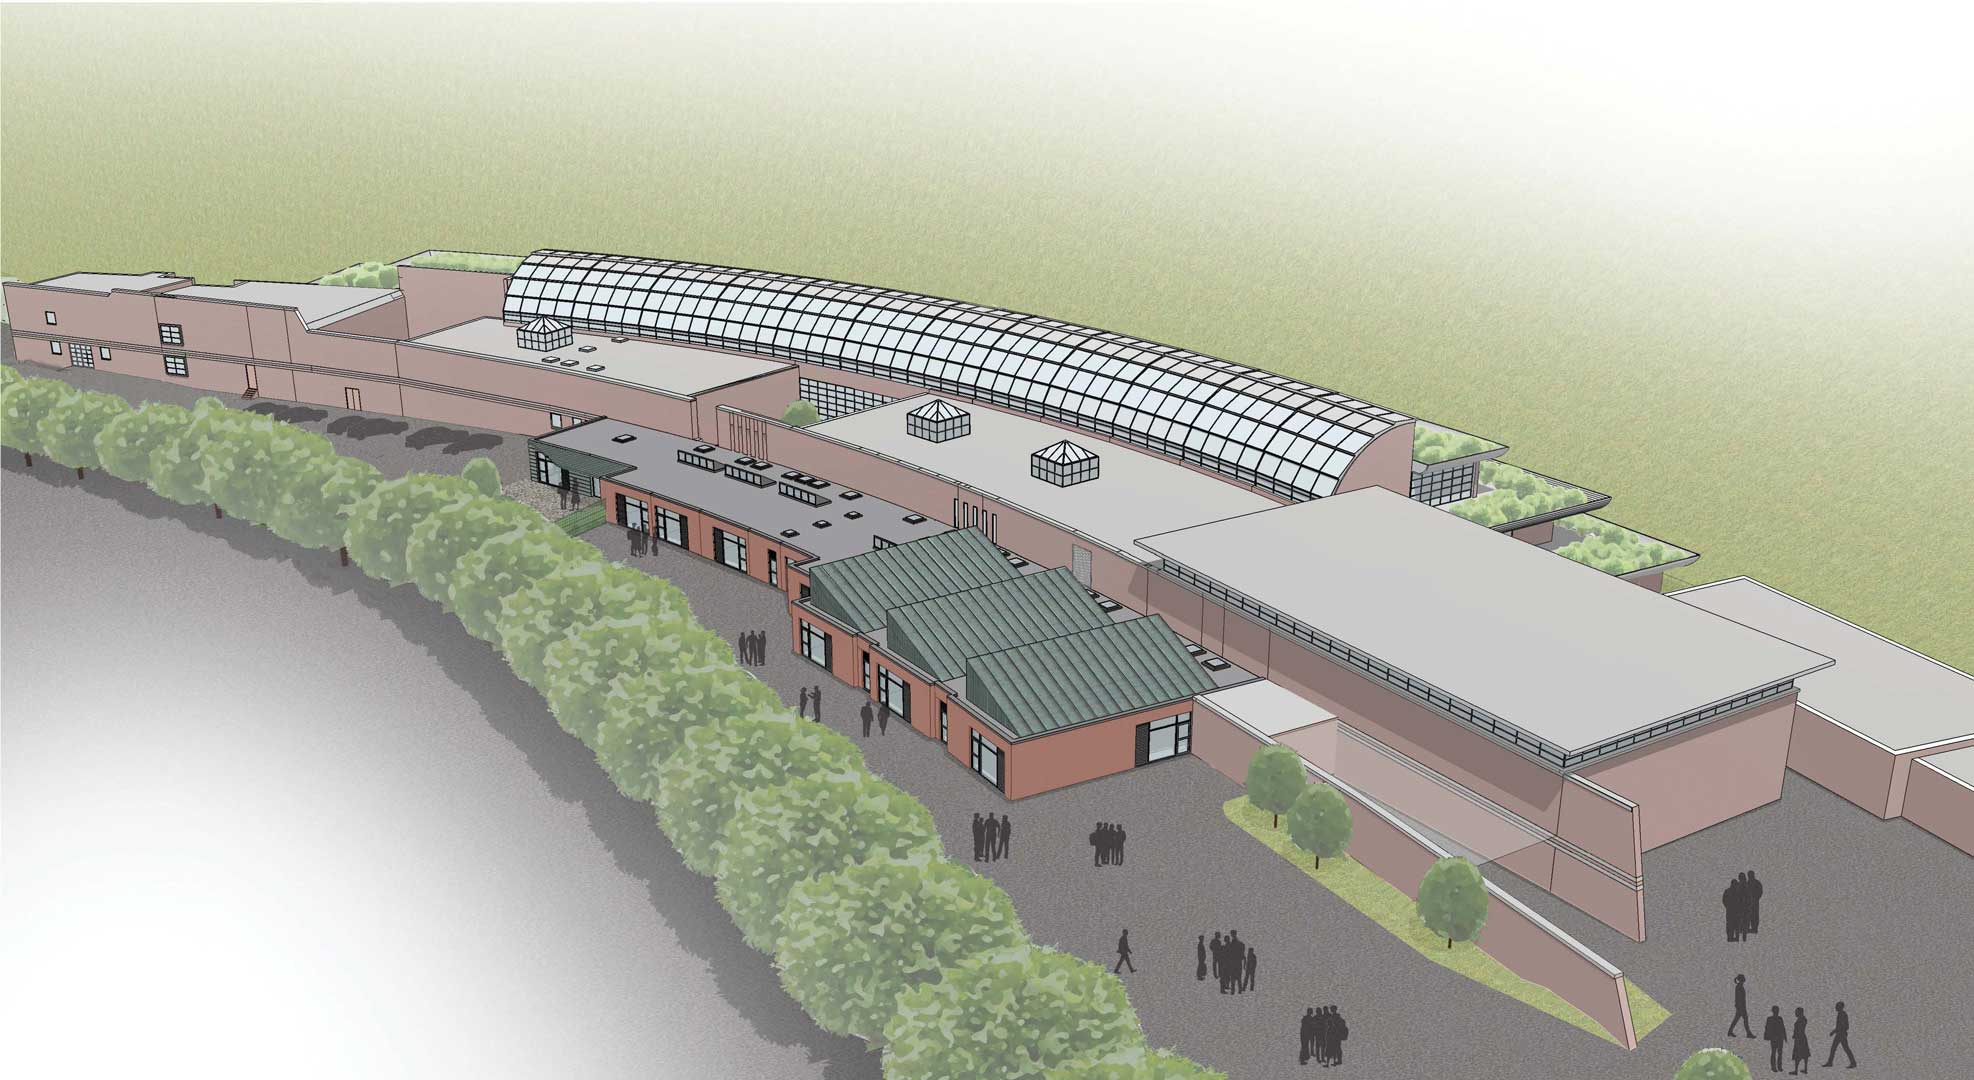 Artist's impression of the completed expansion.